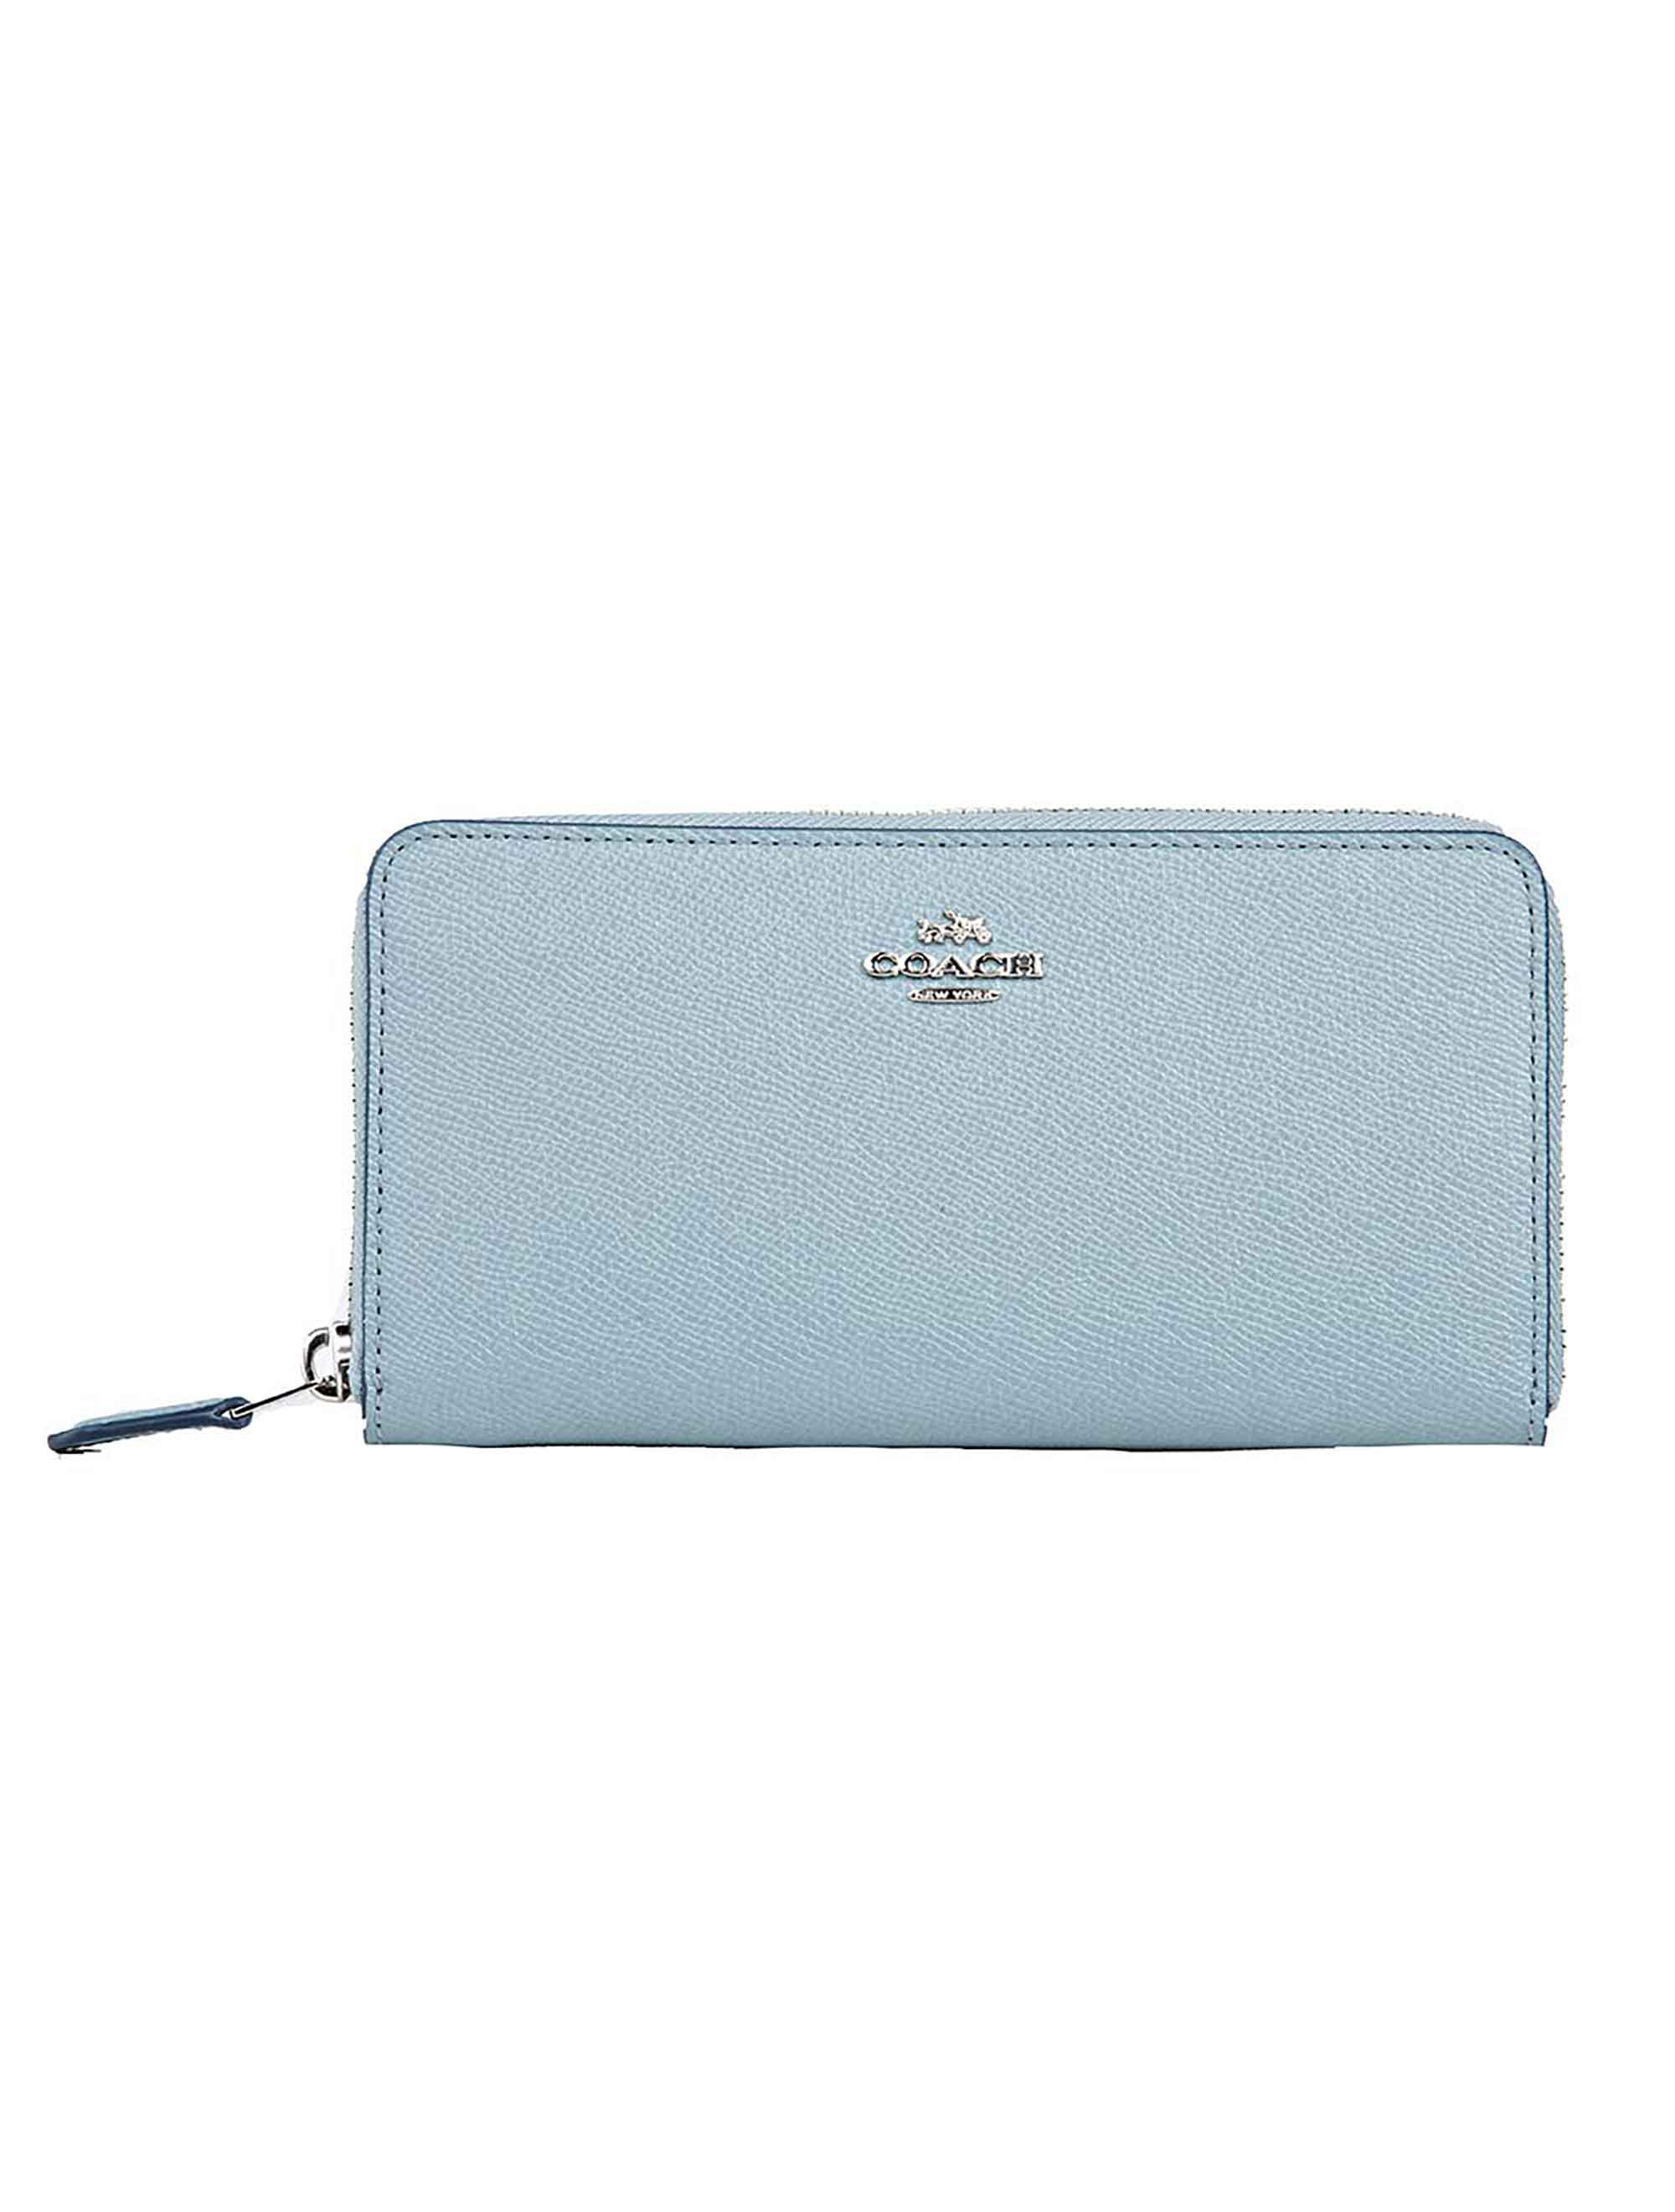 COACH ACCORDION LEATHER WALLET